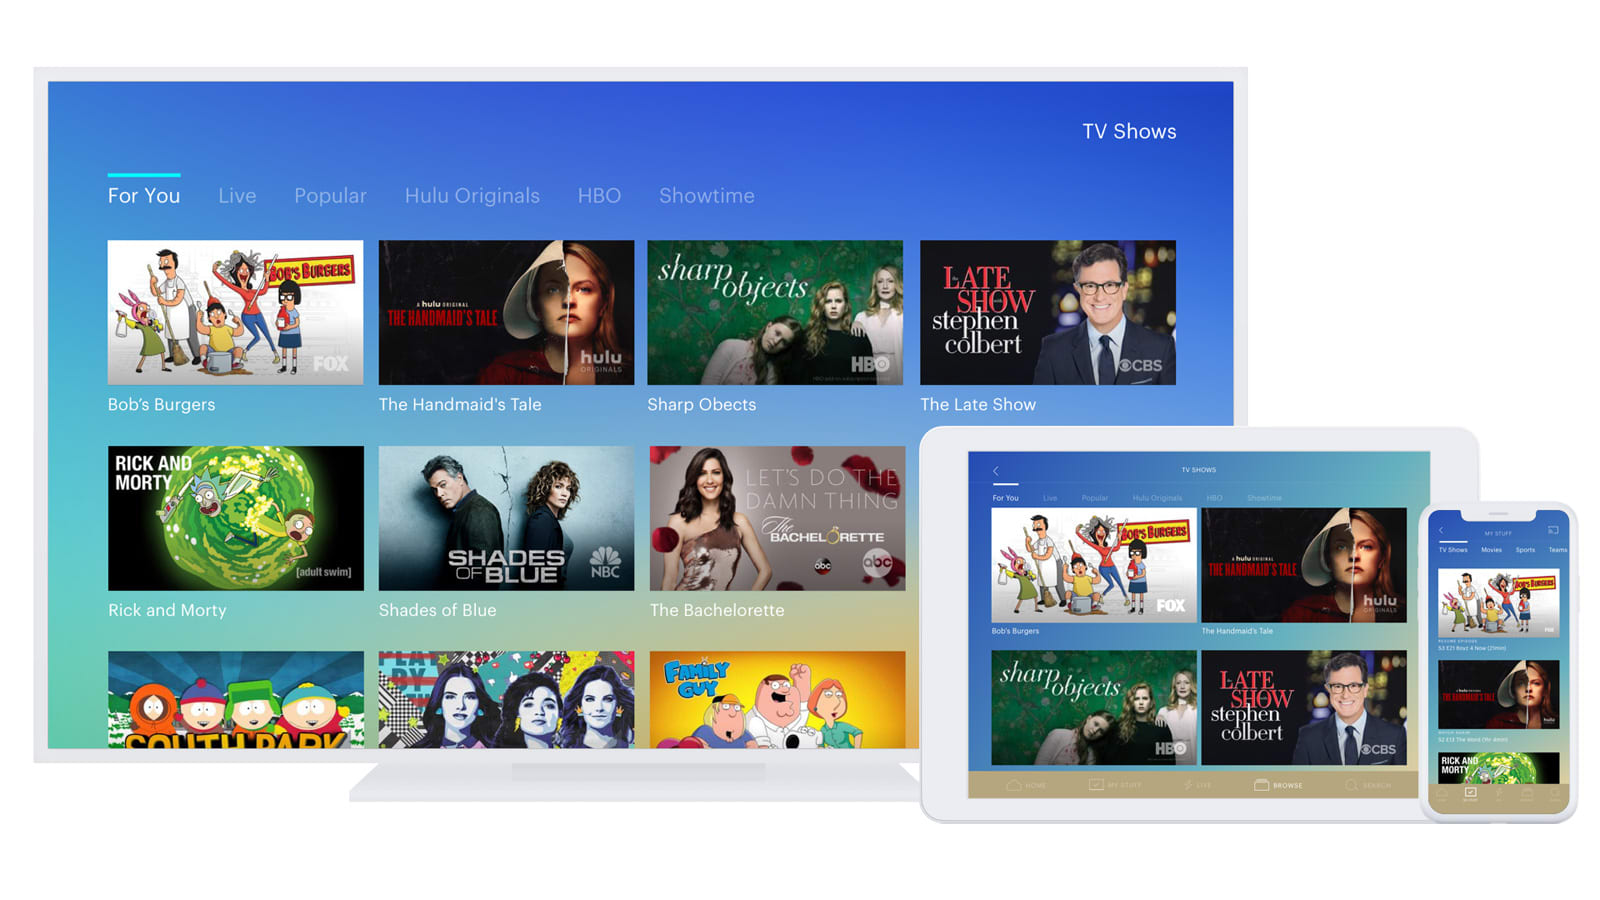 Hulu cuts the price of its basic service to $6 per month